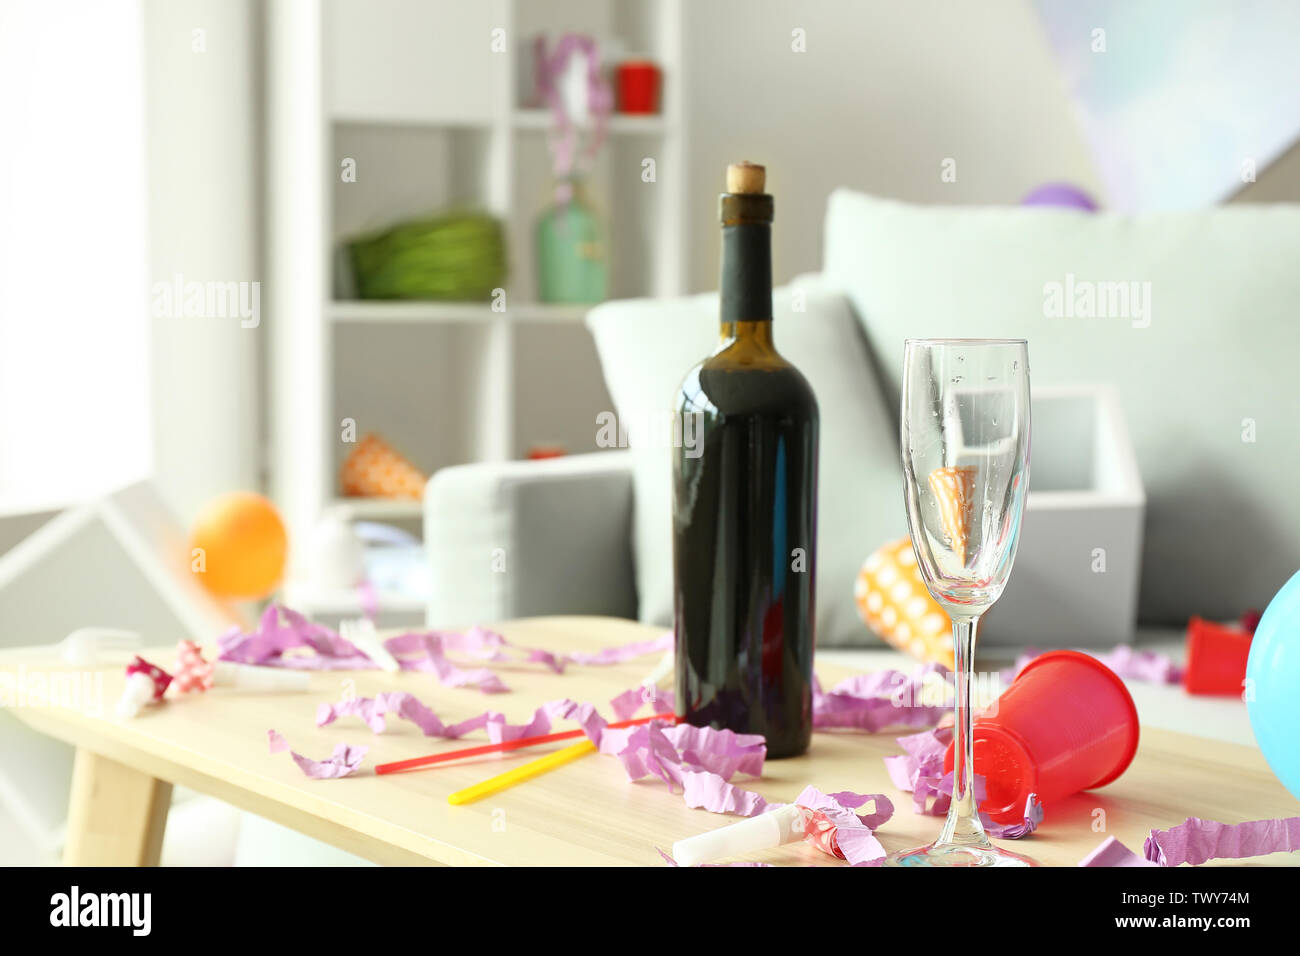 Table with trash in room after party - Stock Image